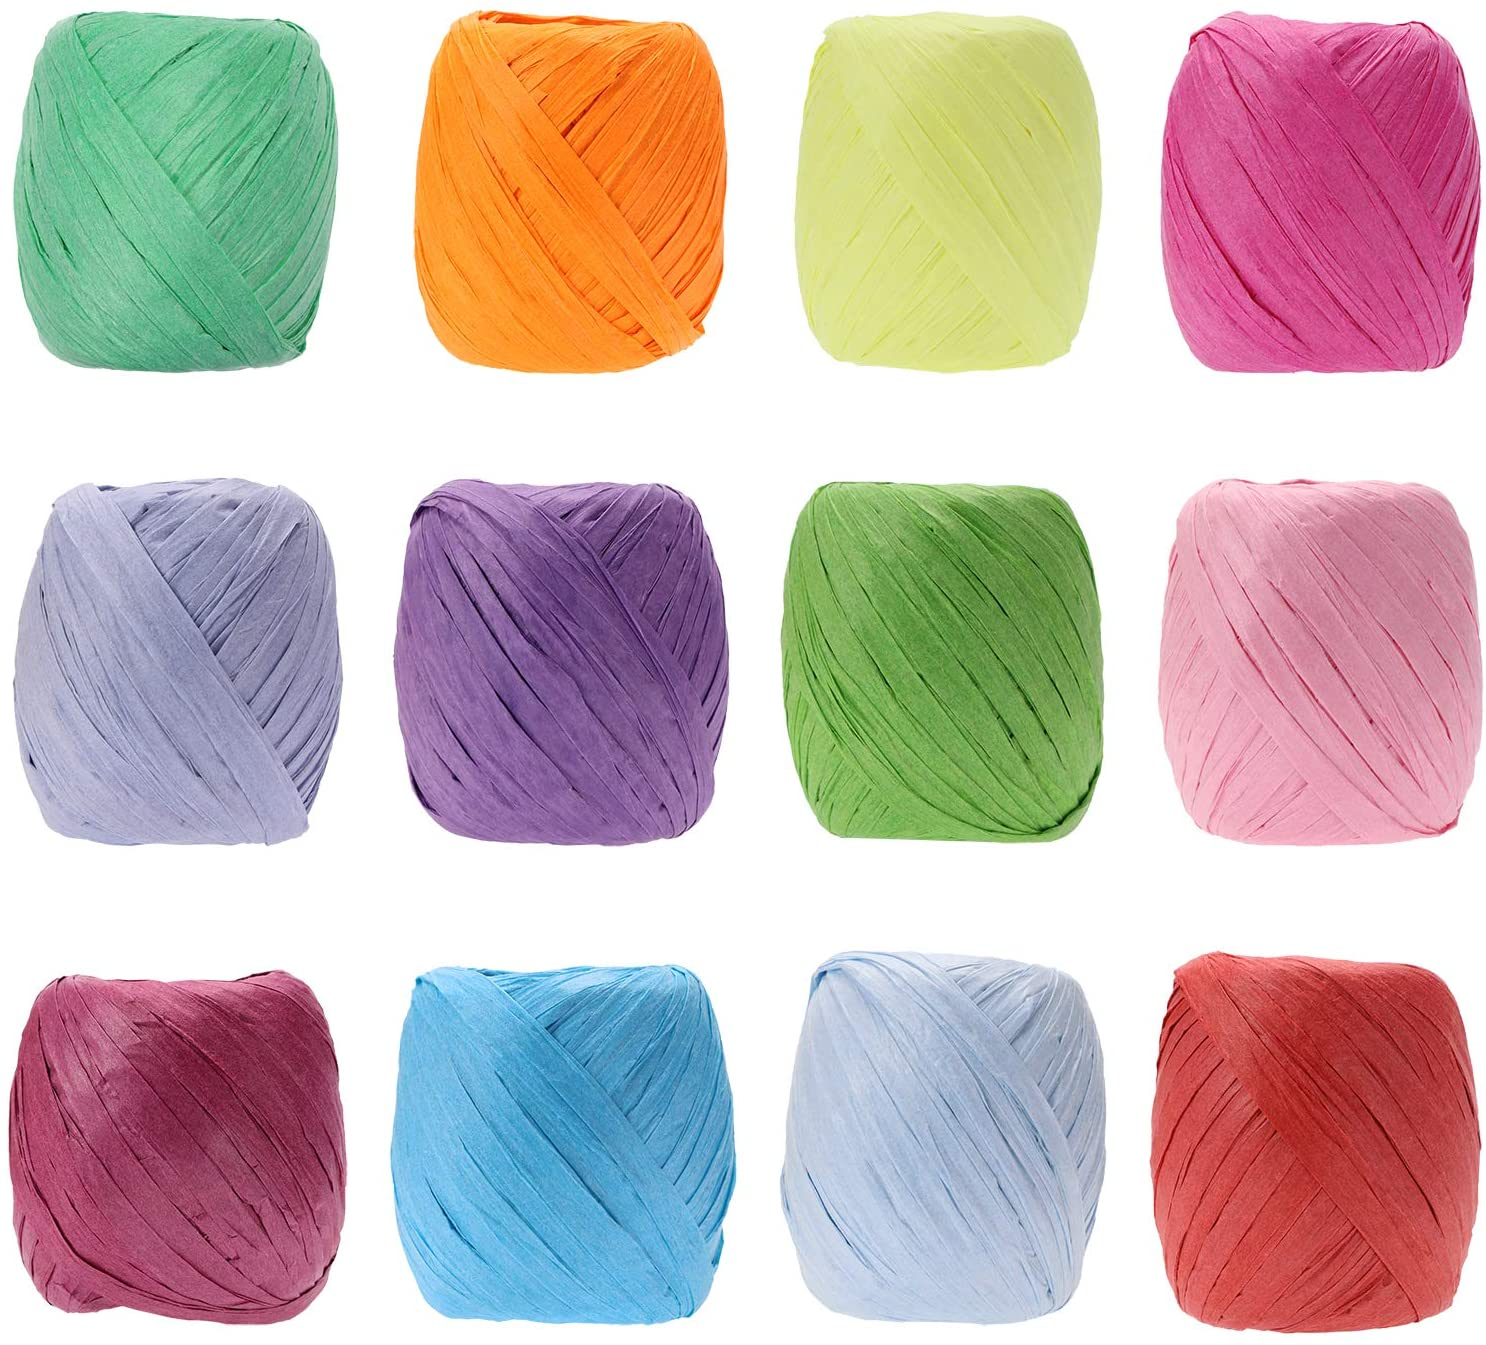 Raffia Paper Ribbon Bows, Penta Angel 12 Rolls 787 Feet Raffia Twine String for Christmas Valentine's Day Party Gifts Wrapping Florist Bouquets DIY Craft Decoration Weaving, 12 Colors